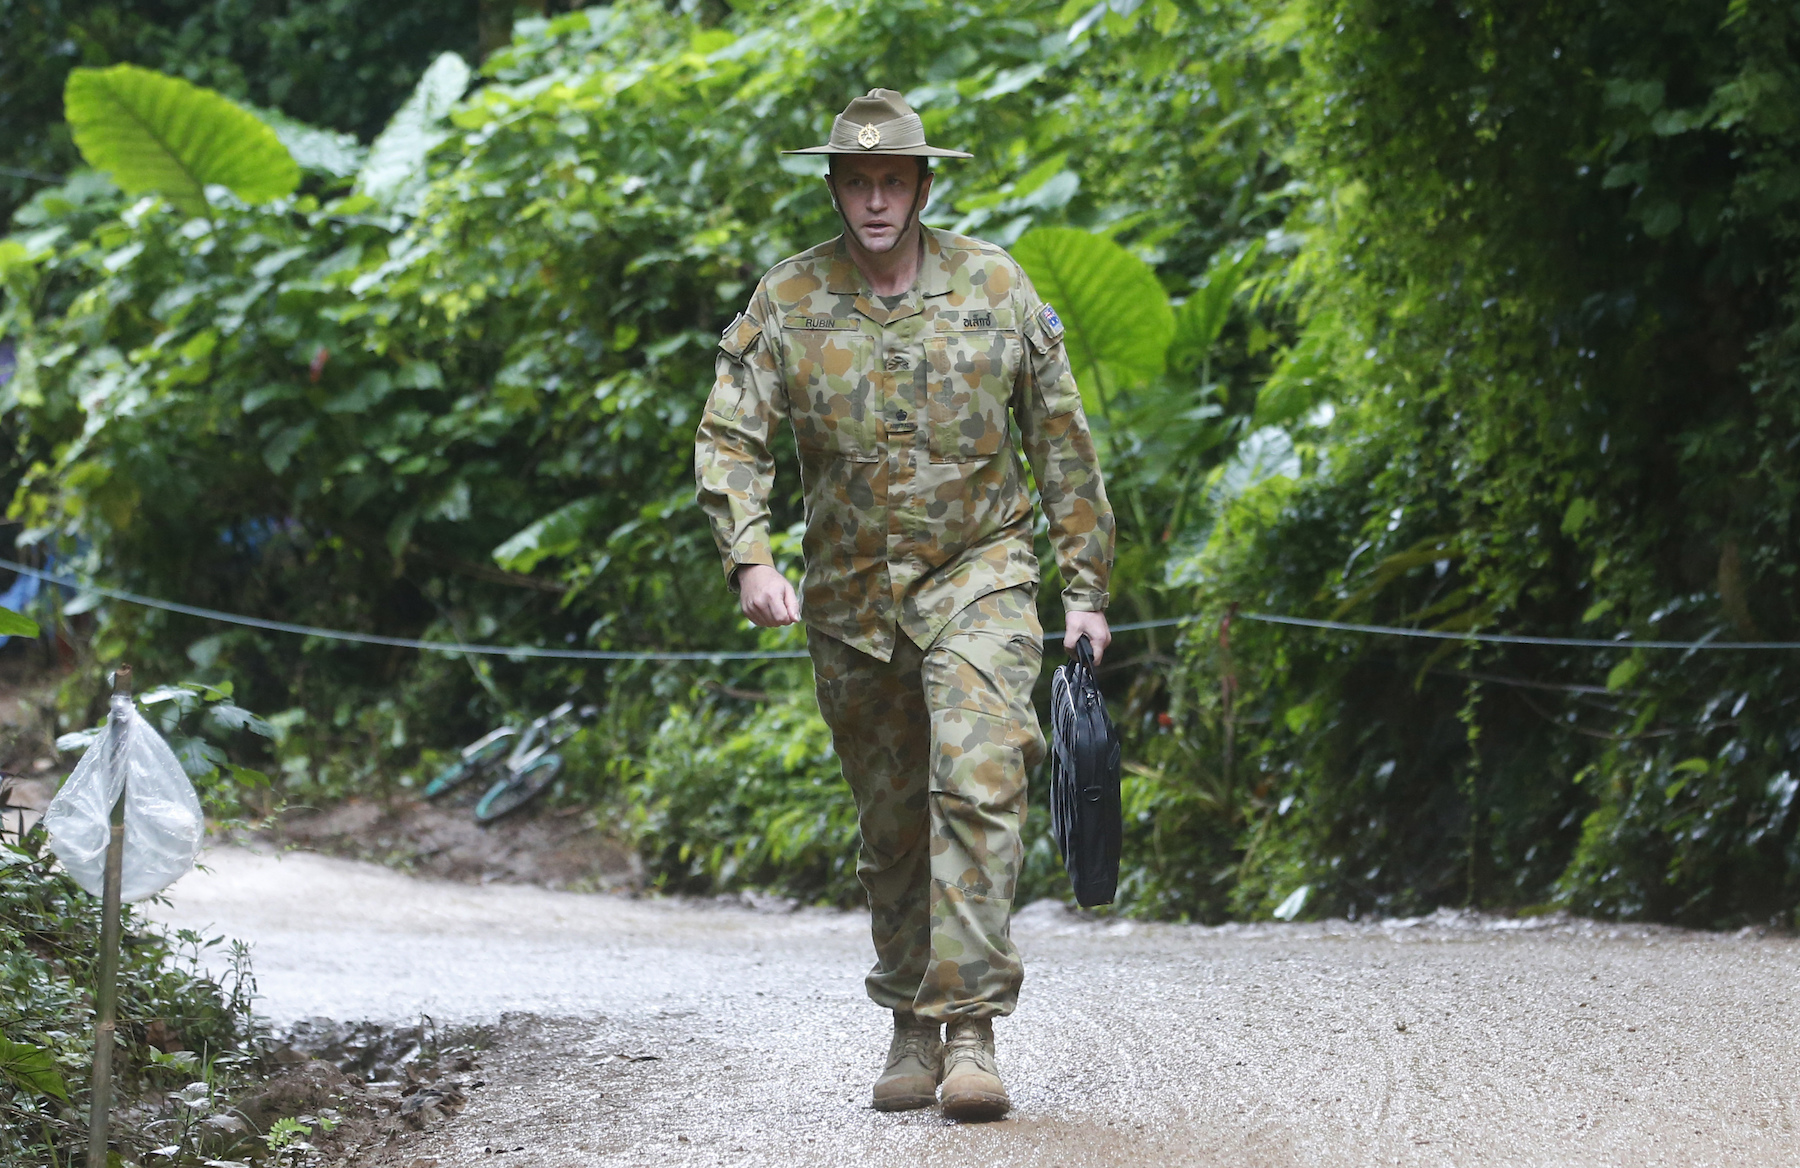 "<div class=""meta image-caption""><div class=""origin-logo origin-image ap""><span>AP</span></div><span class=""caption-text"">Australian Federal Police and Defense Force personnel arrive near a cave where 12 boys and their soccer coach have been trapped since June 23,. (AP Photo/Sakchai Lalit)</span></div>"